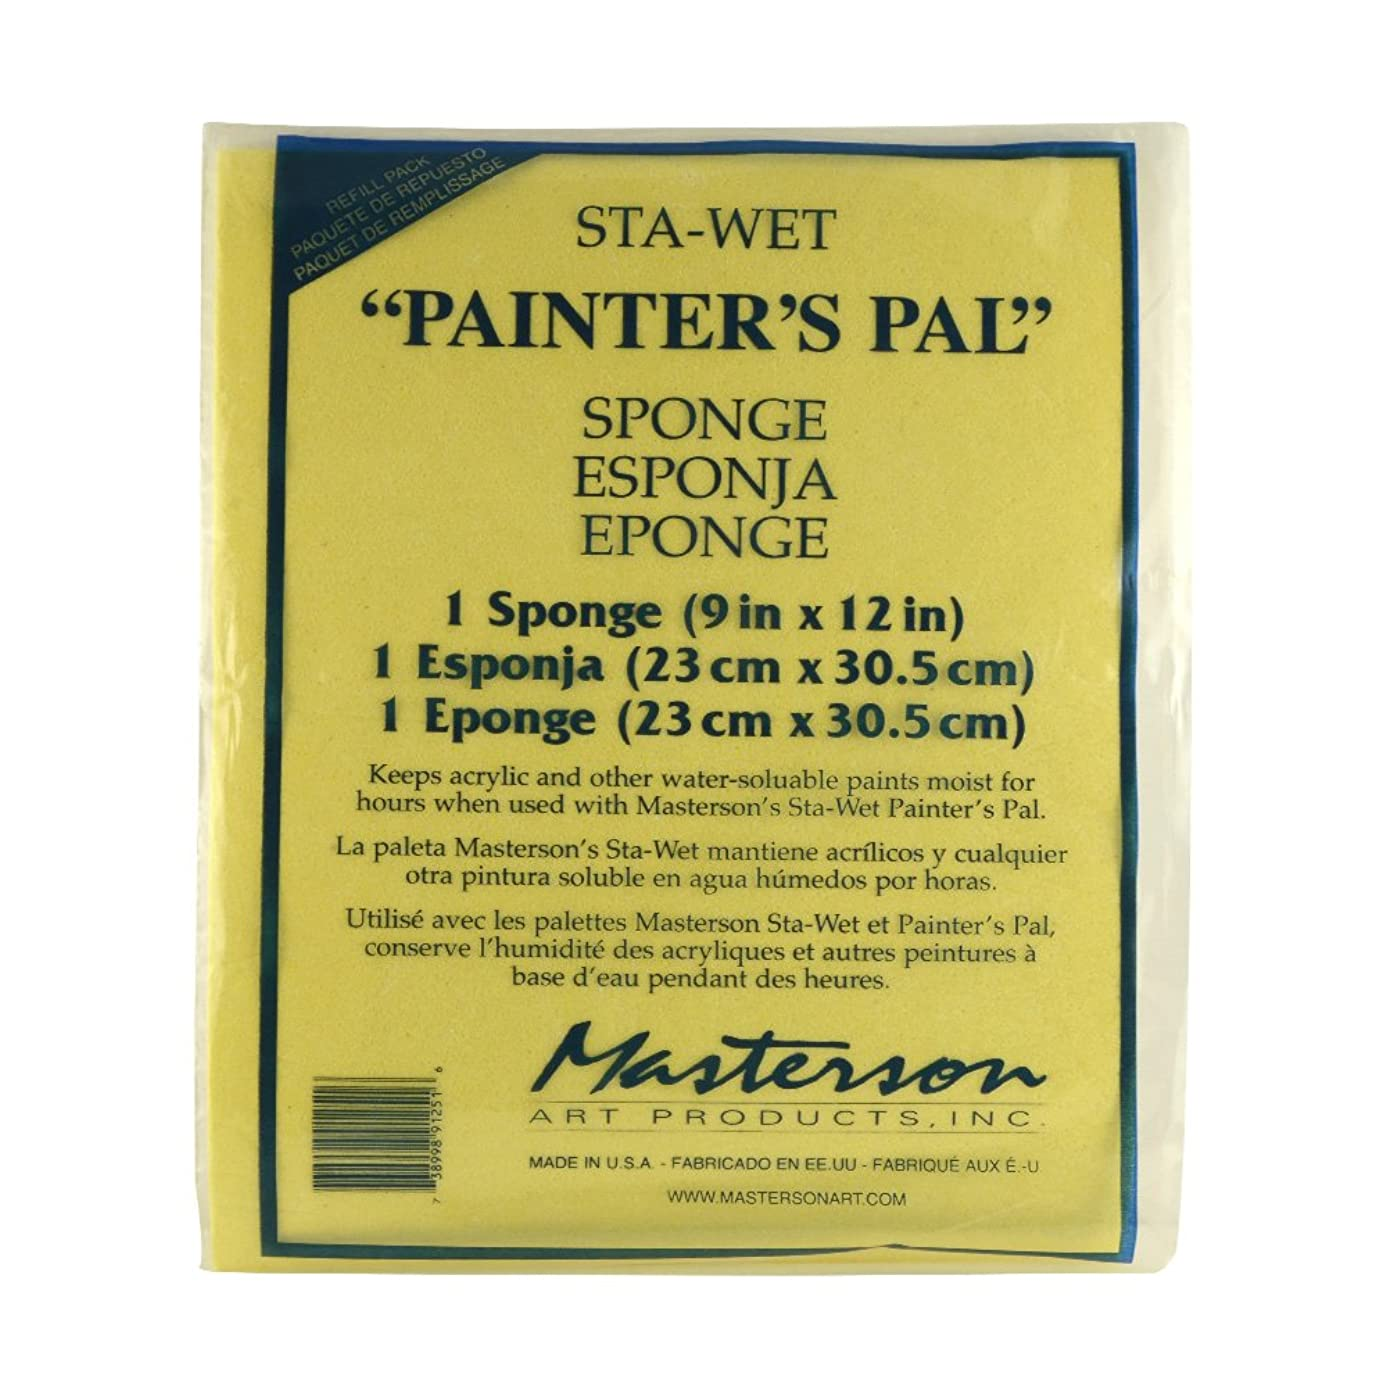 Masterson Sta-Wet Painter's Pal Sponge Refill, 12 X 13 inches, Package of 1 (912.51)